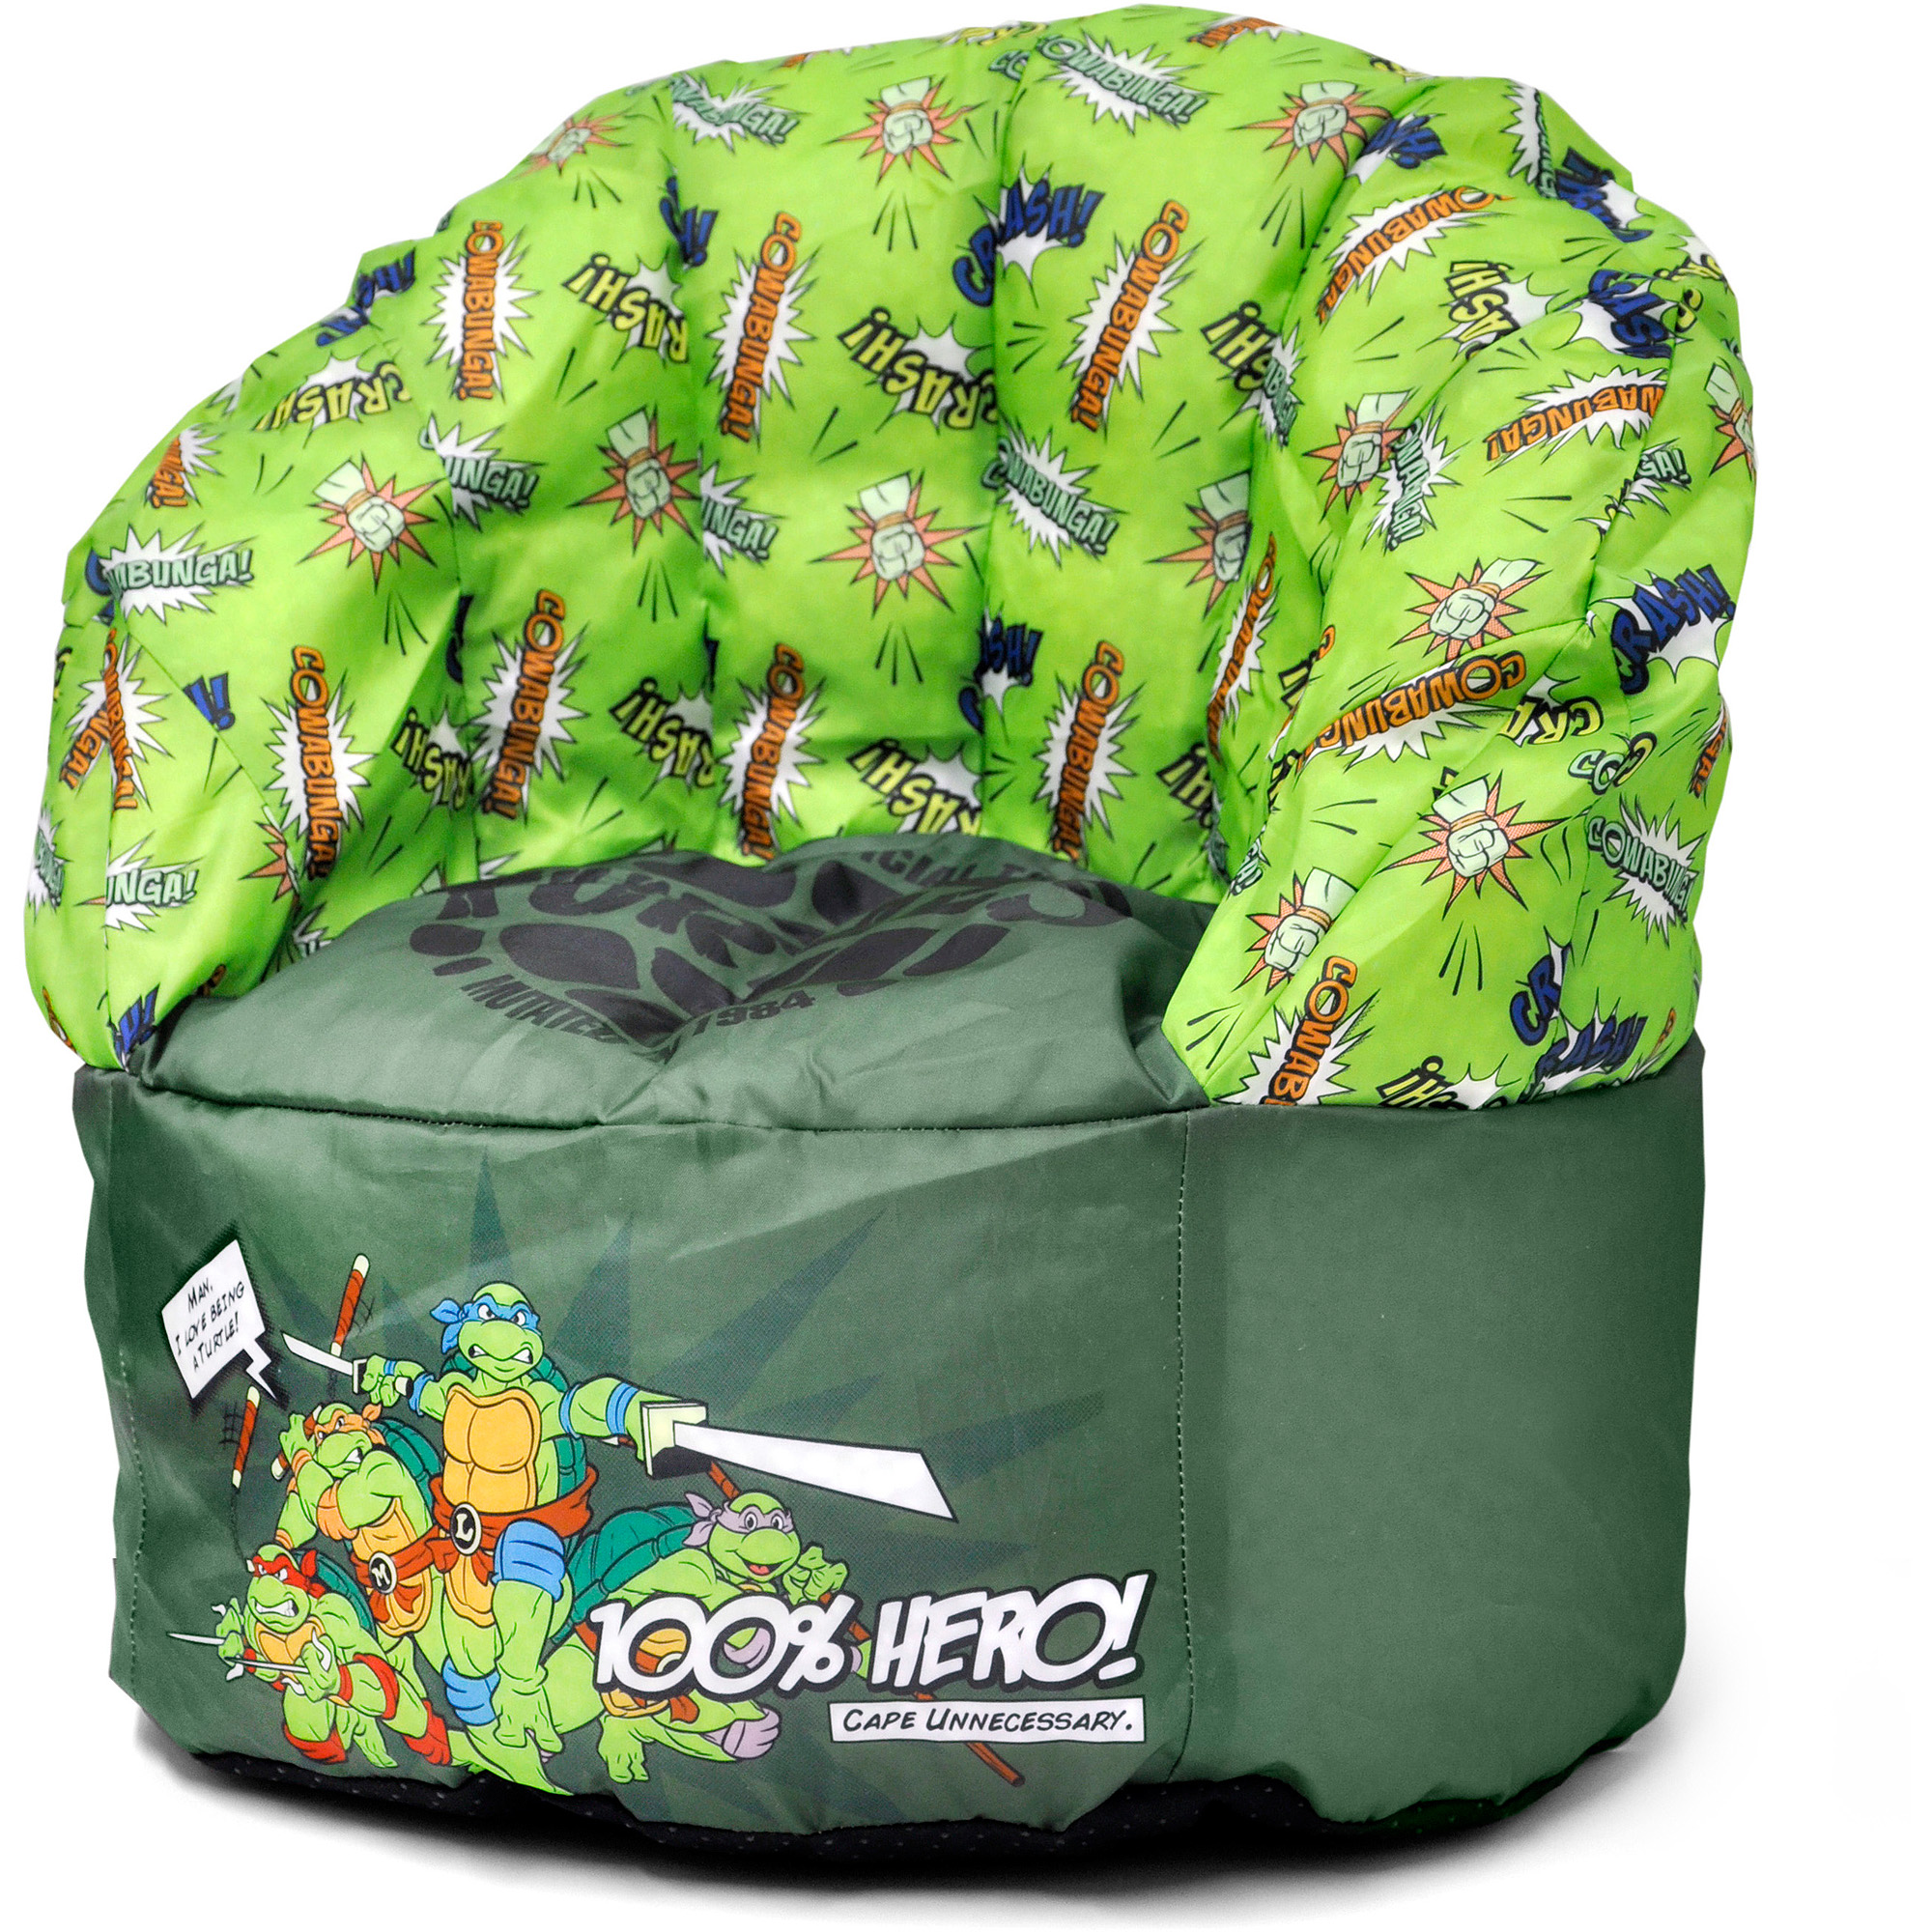 Idea Nuova Character Toddler Kids Bean Bag Chair with Piping in Teenage Mutant Ninja Turtles